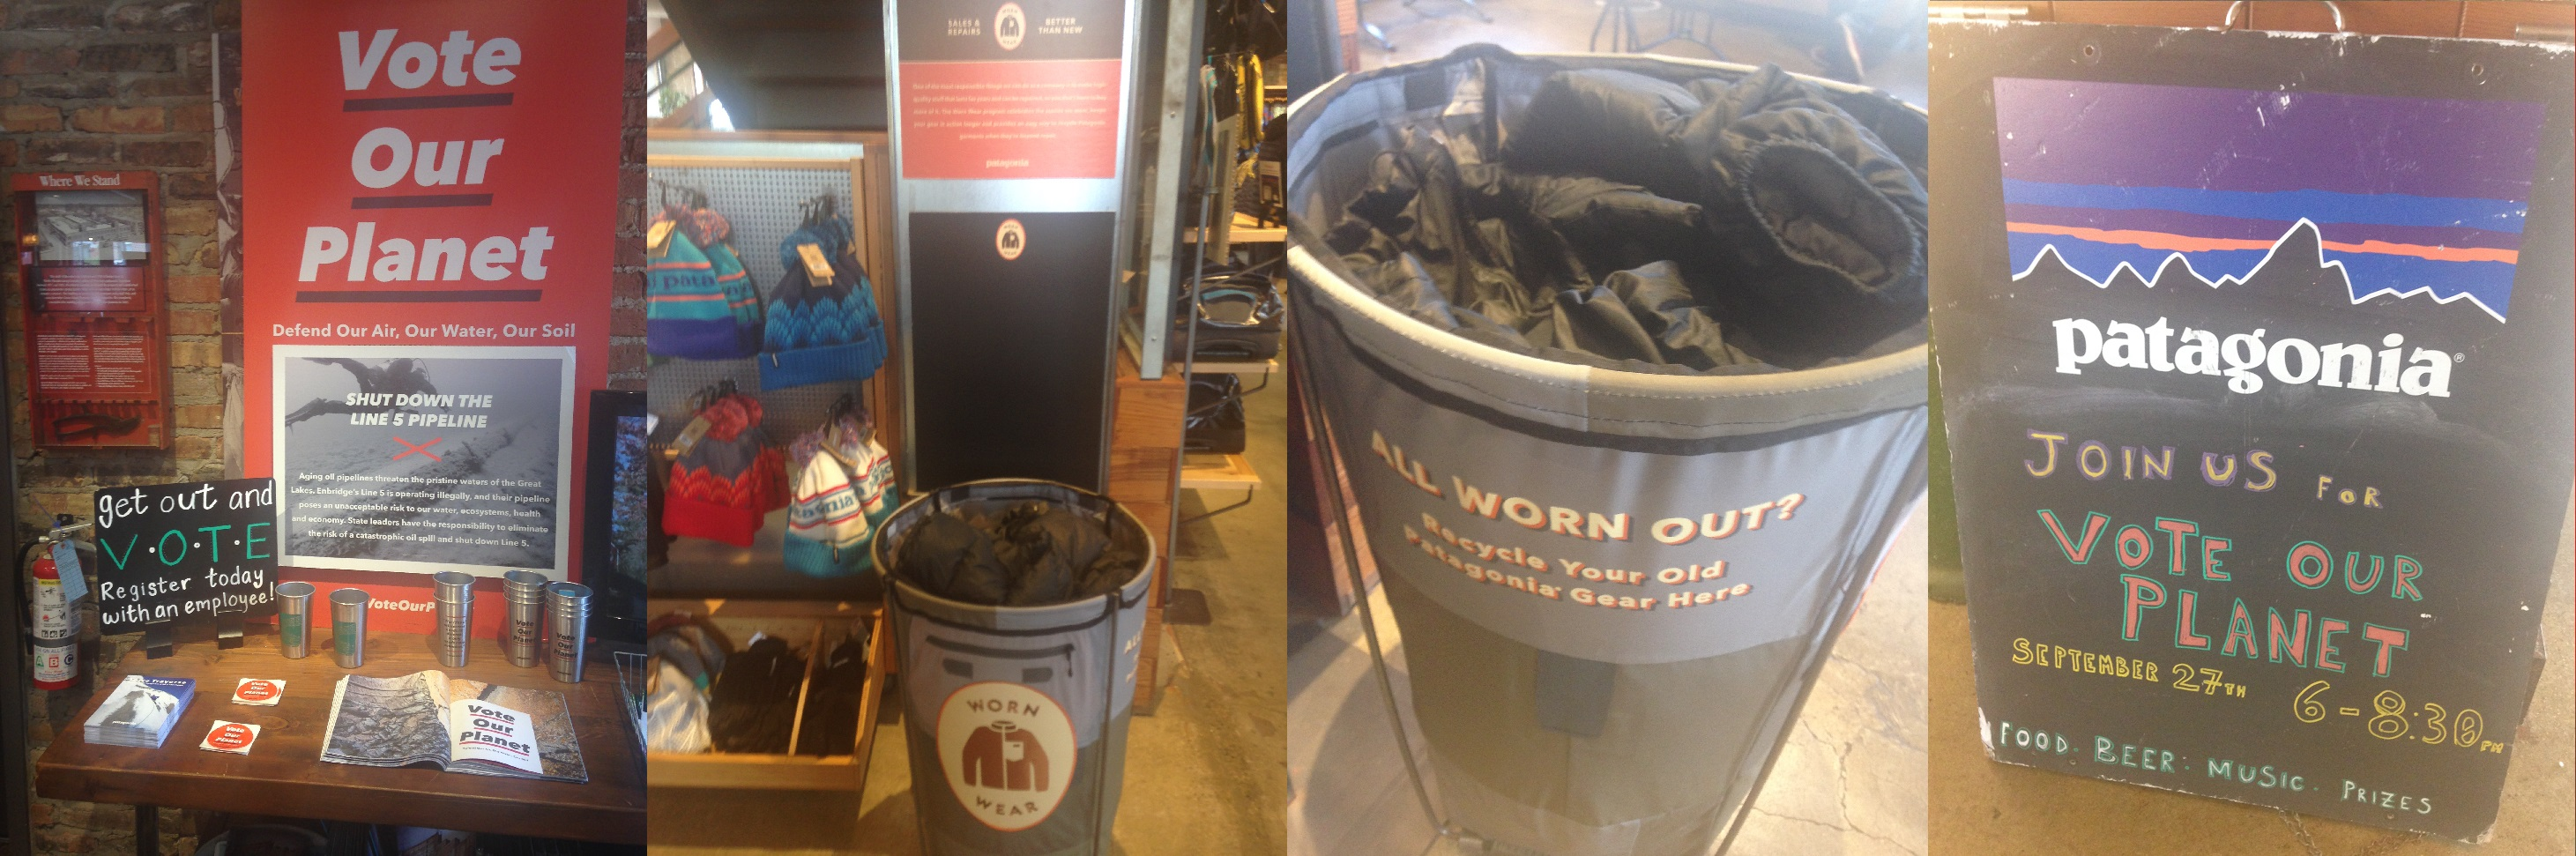 Patagonia Activism in a Chicago store. A call to help save the air, earth, water and recycle your worn gear.